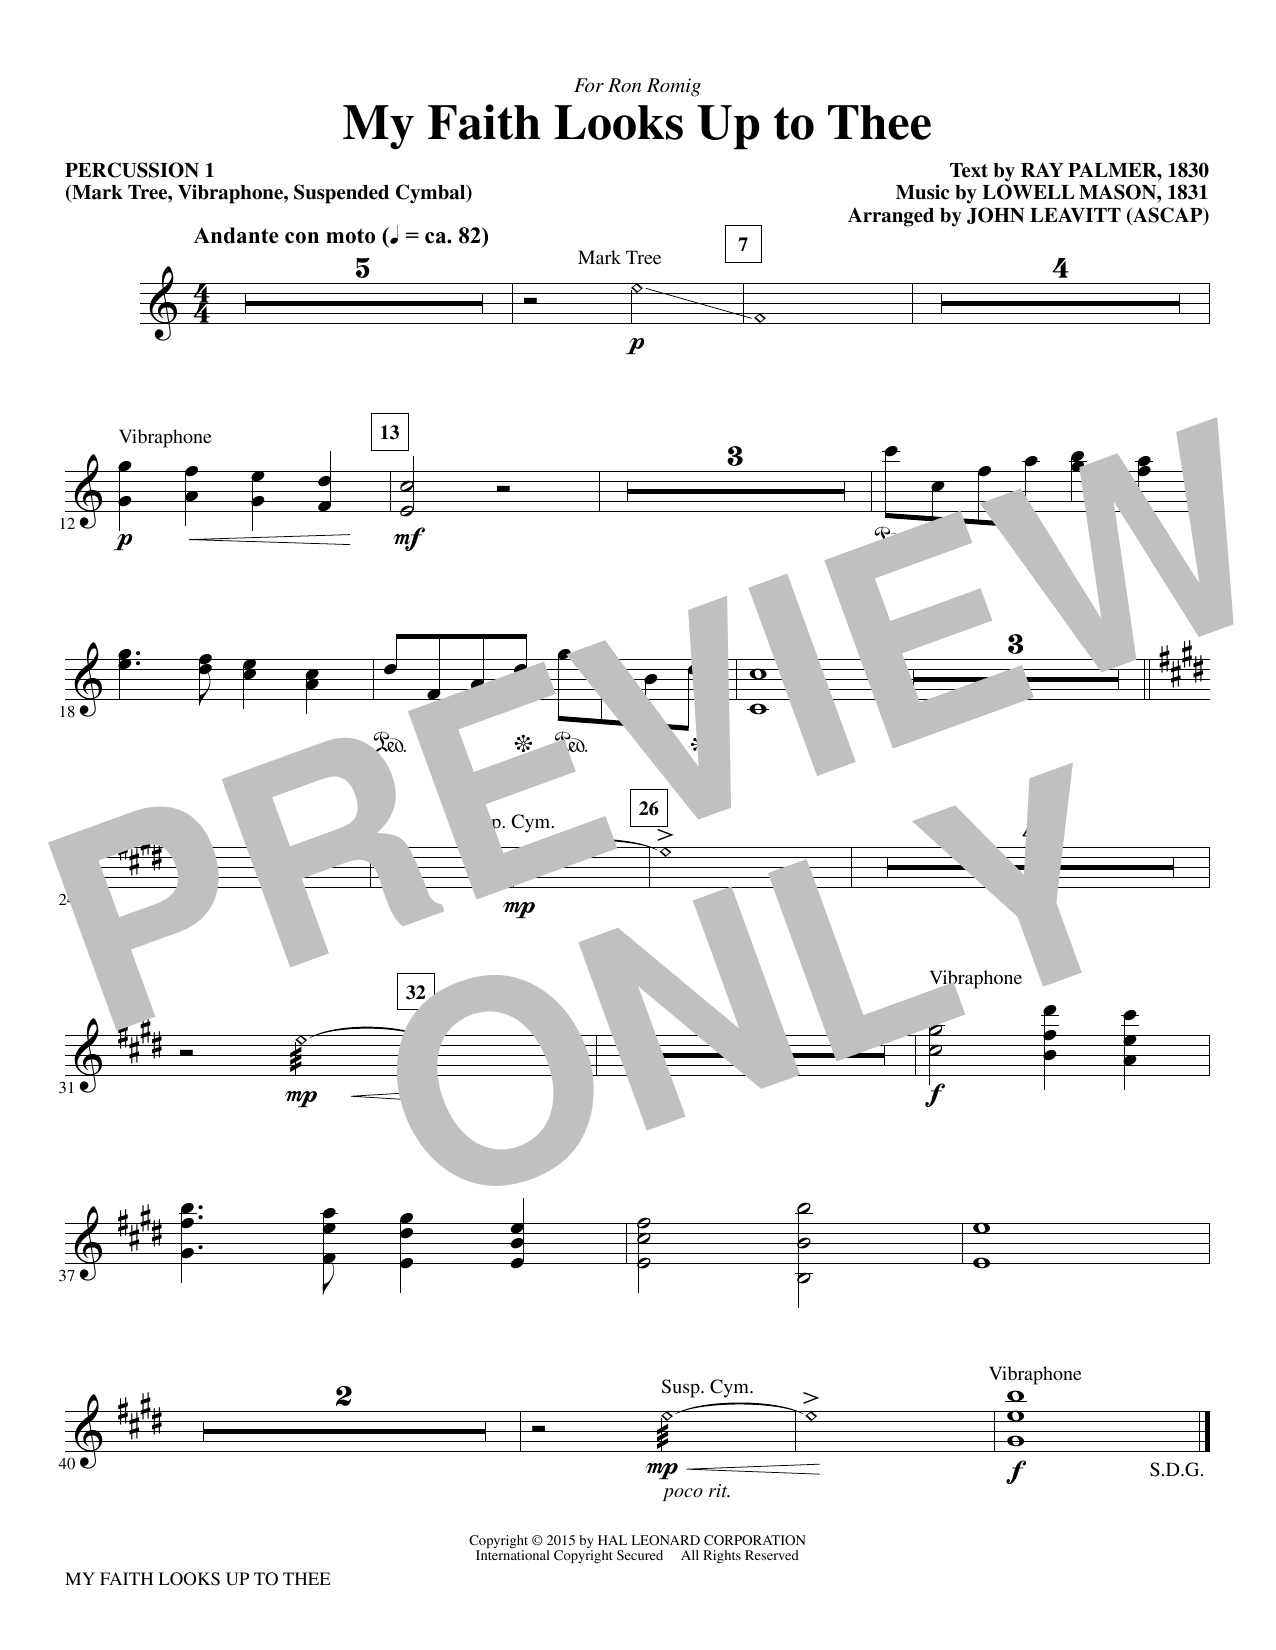 My Faith Looks Up To Thee - Percussion 1 Sheet Music